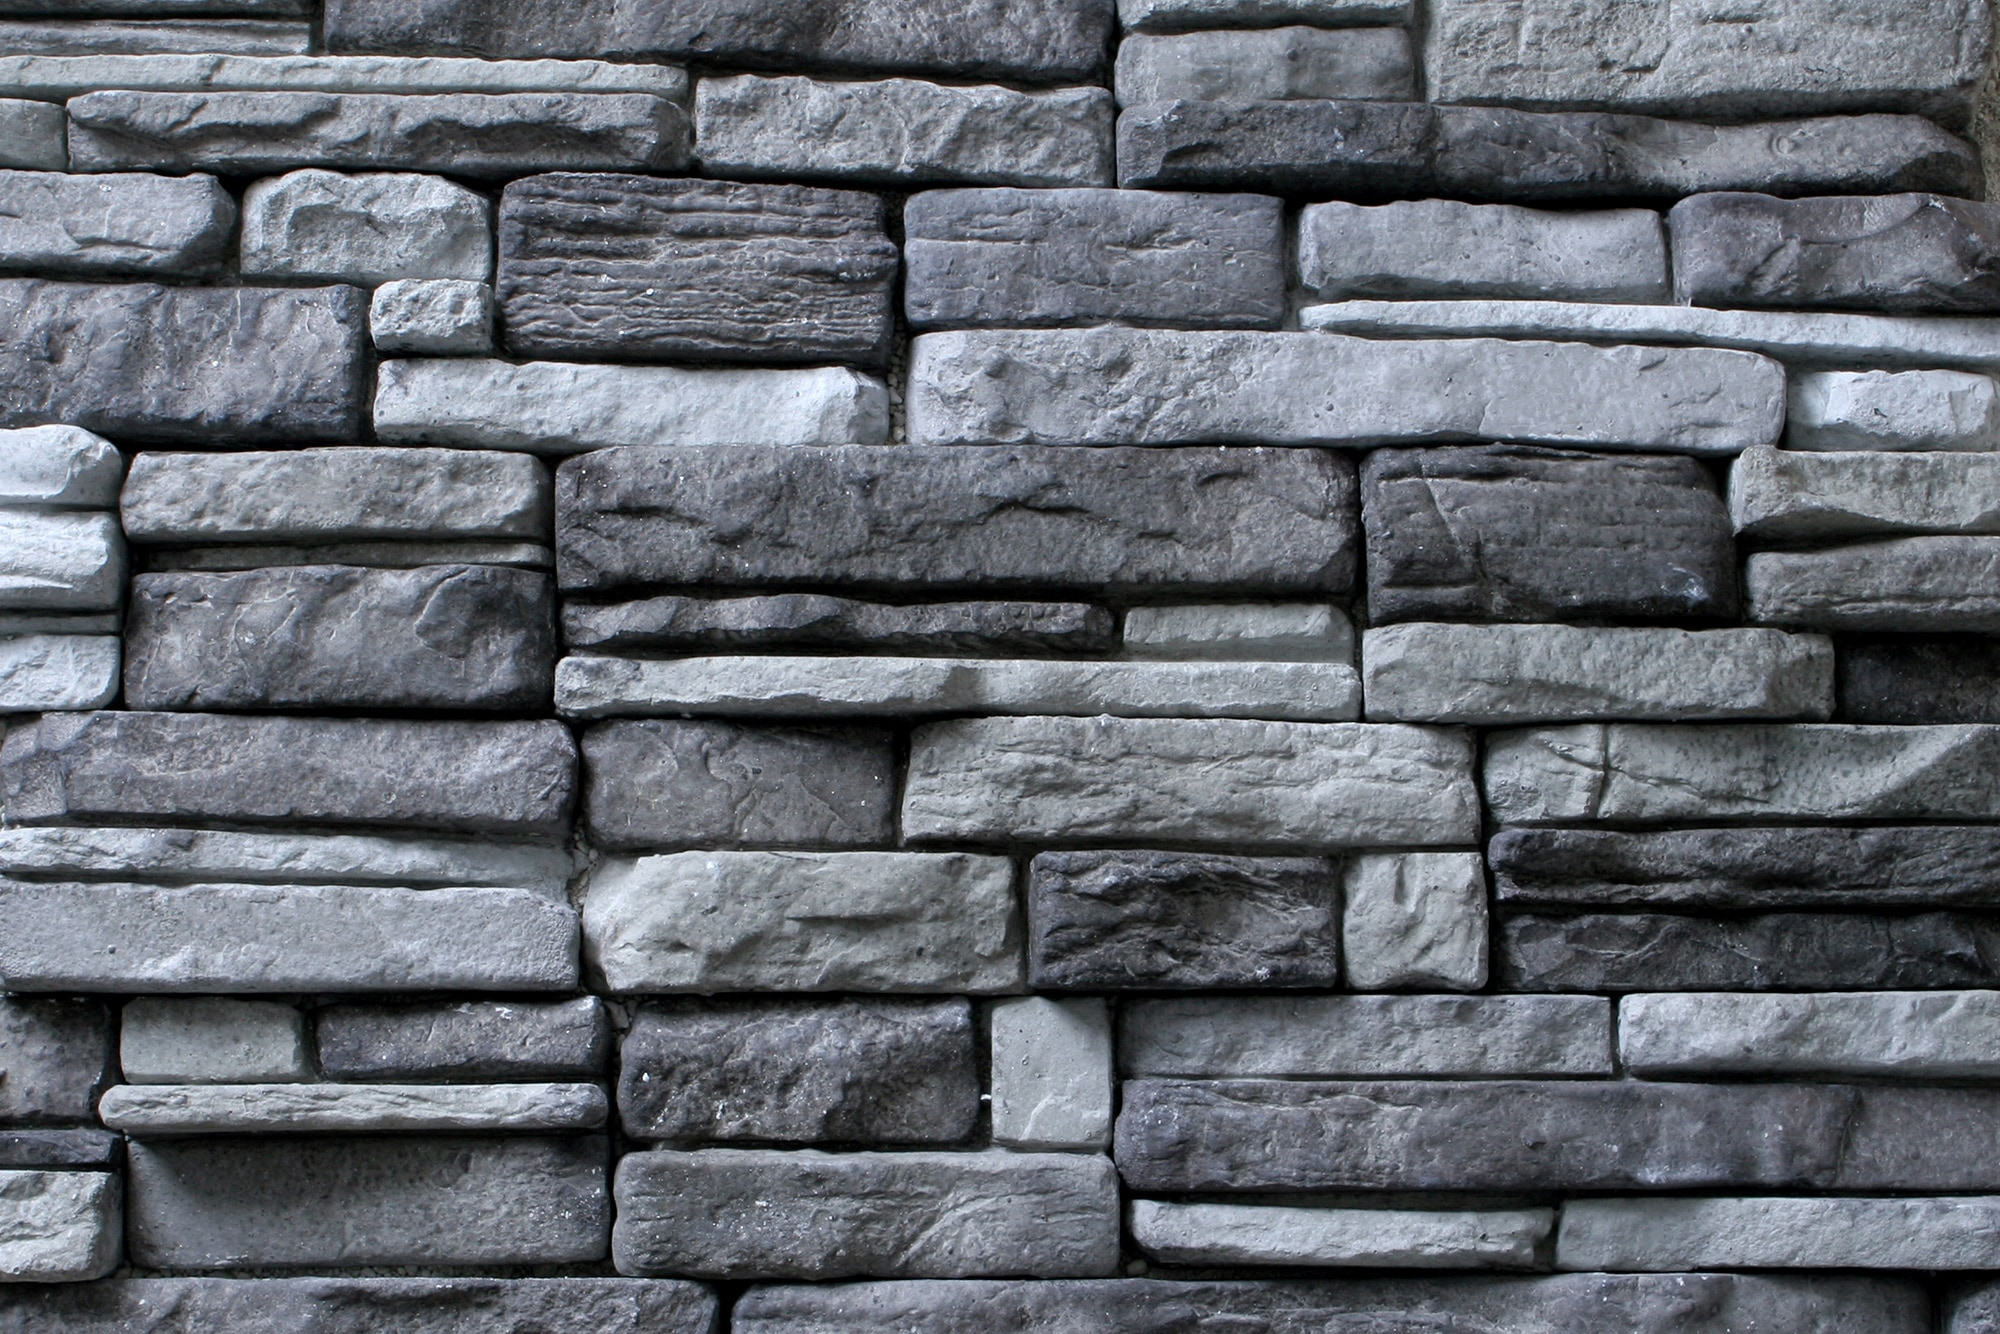 Kodiak Mountain Stone Manufactured Stone Veneer   Ready Stack Stone Panels  Glacier / Ready Stack / 120 Sq Ft Crate